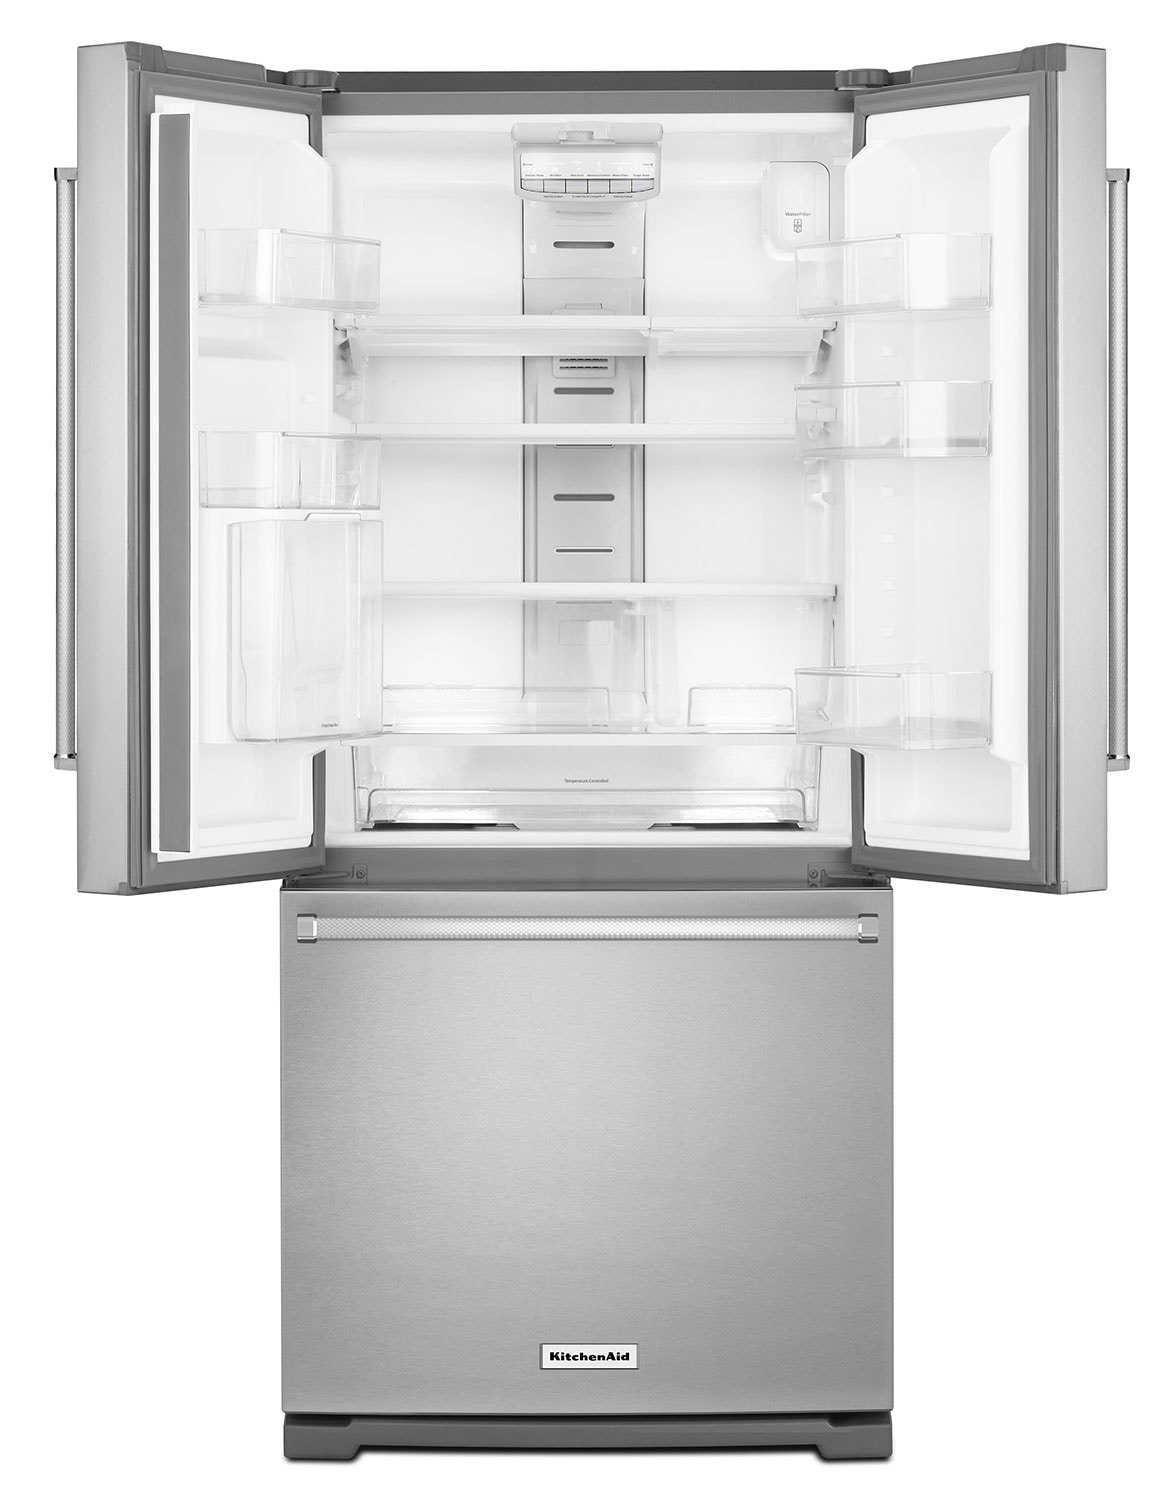 KitchenAid Stainless Steel French Door Refrigerator (20 Cu. Ft ...